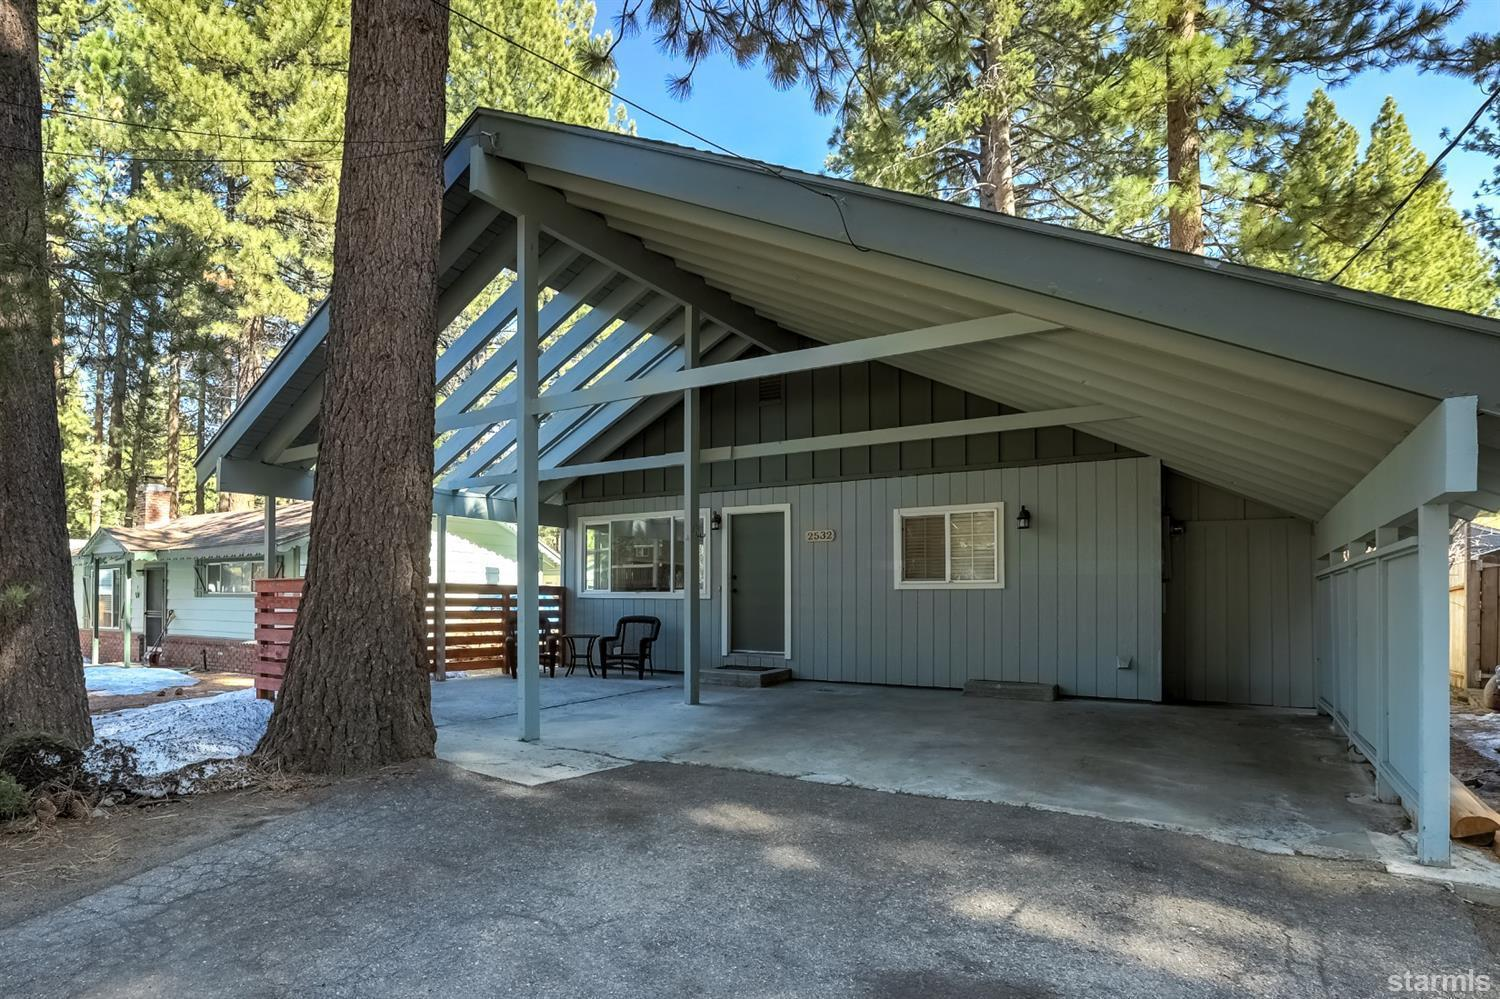 2532 Bertha Avenue, 134042, South Lake Tahoe, Single-Family Home,  for sale, Brandie Griffith, Realty World - Lake Tahoe